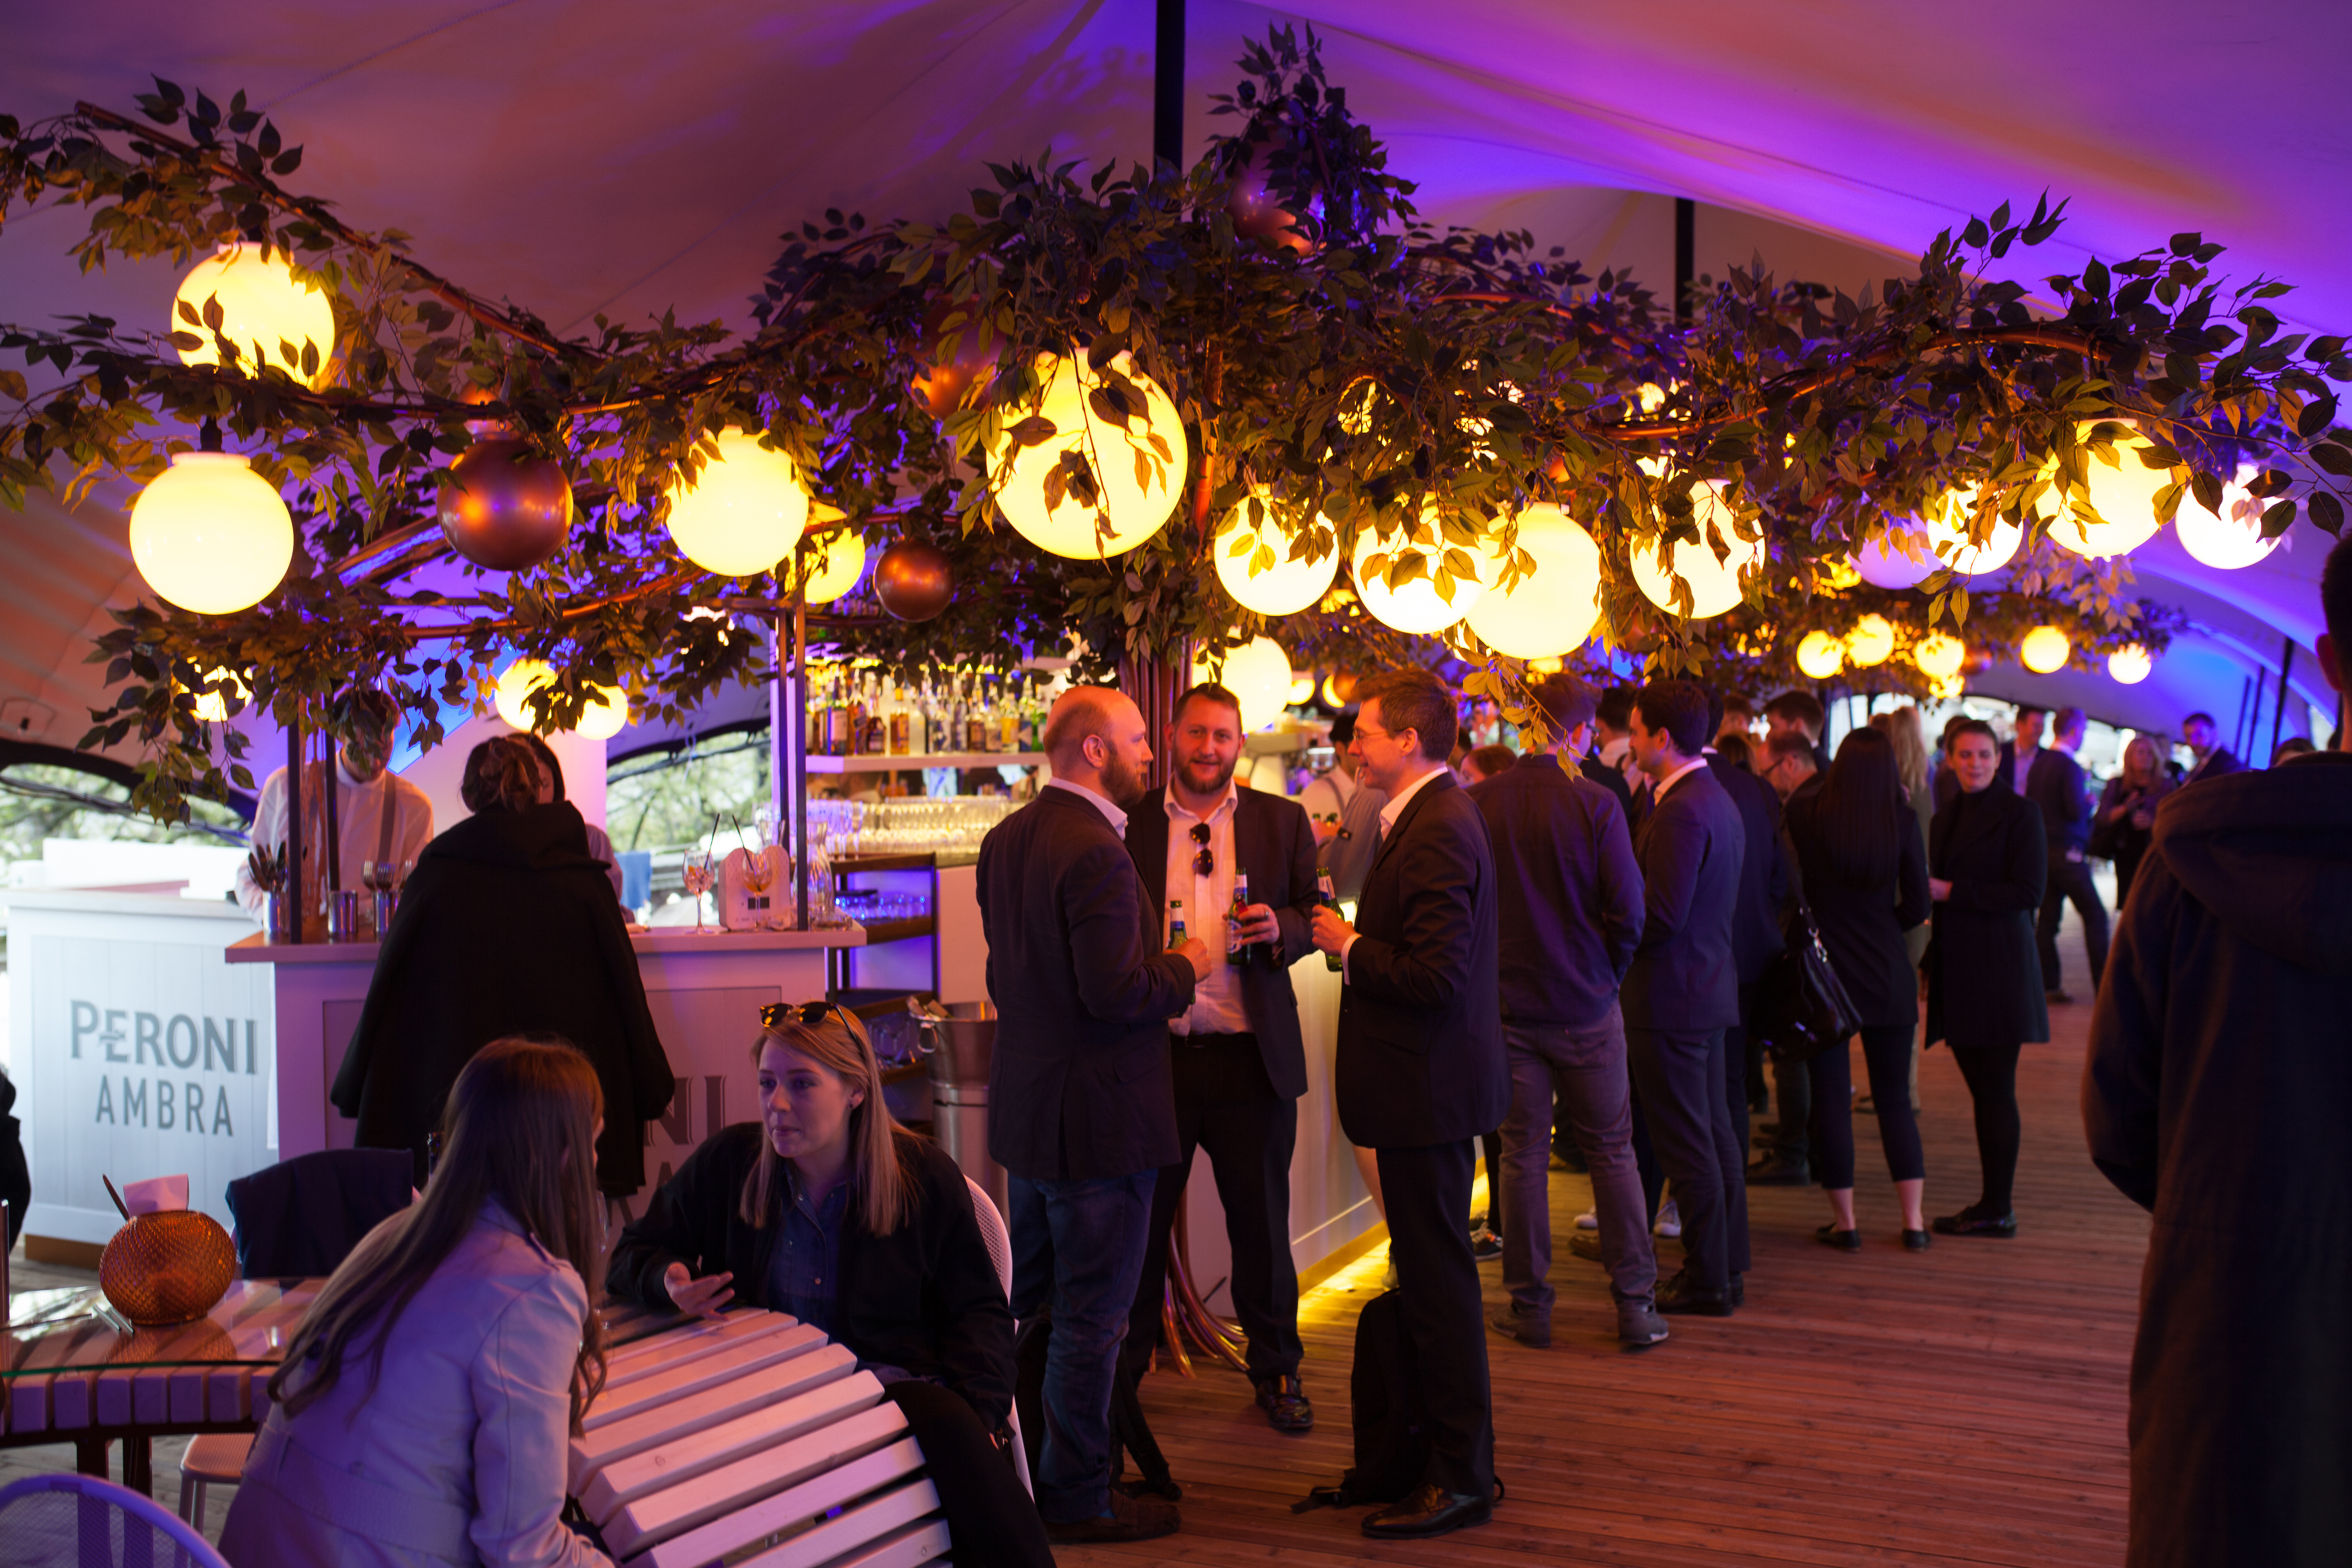 An Afternoon At... The Peroni Ambra Terrace, Somerset House 6